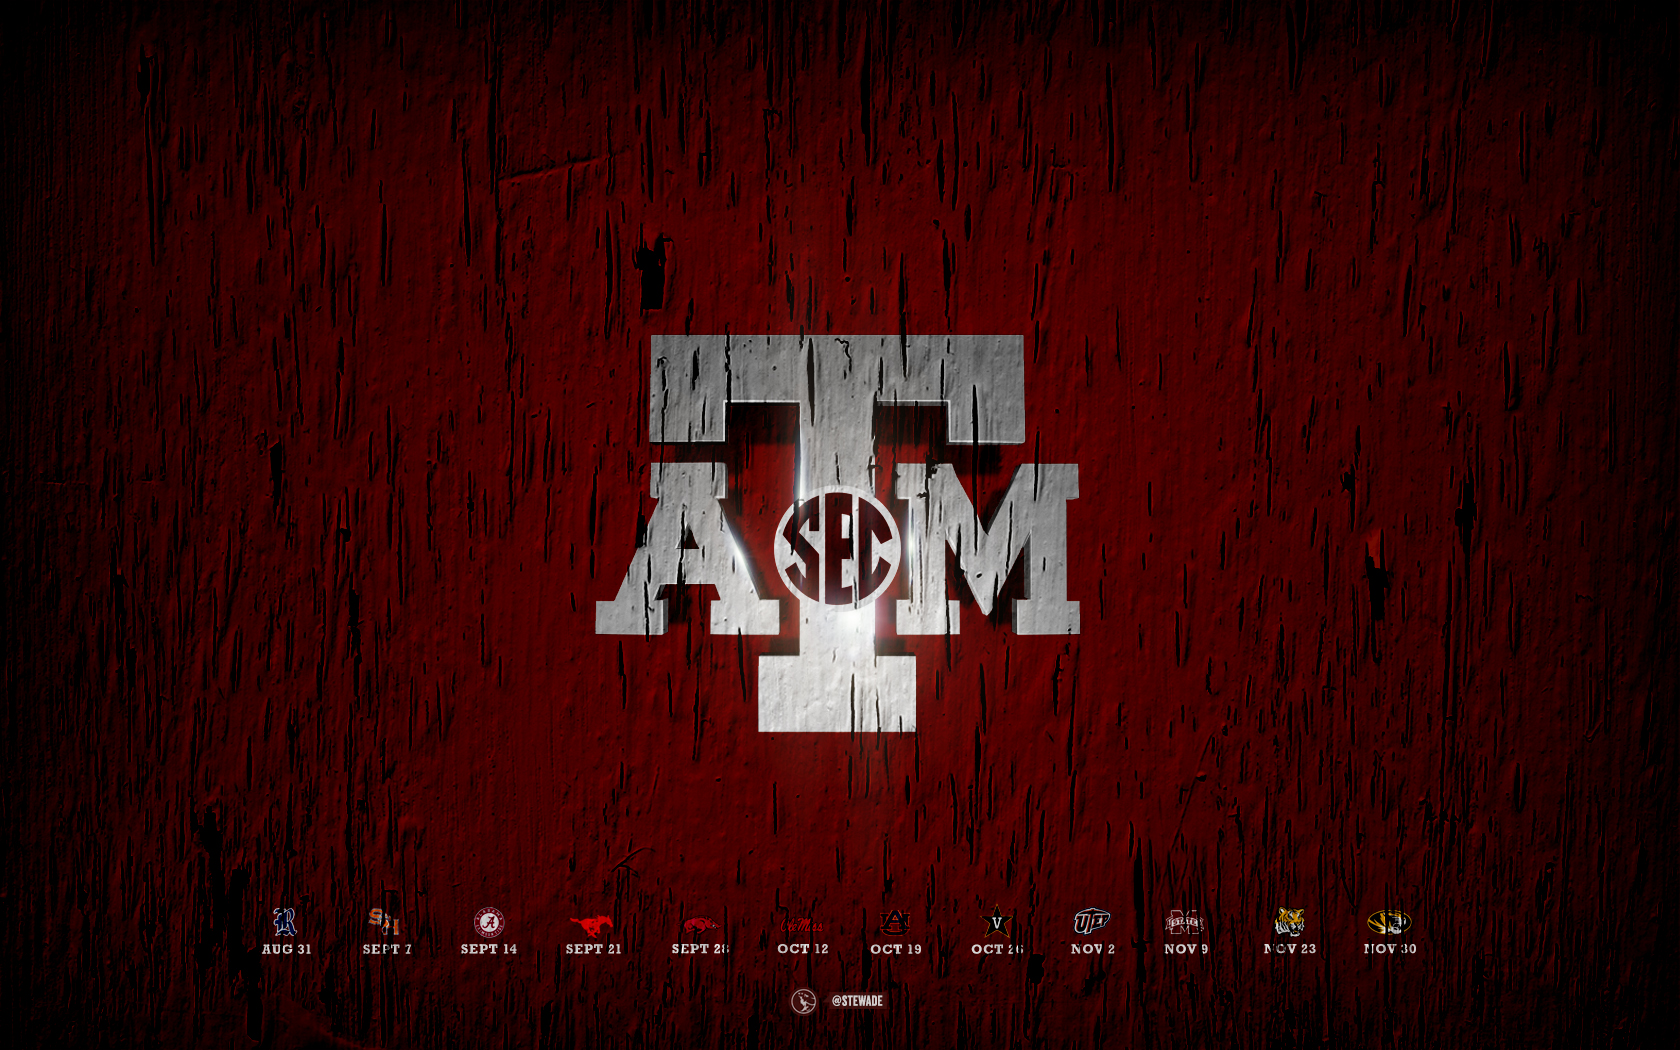 M M Desktop Wallpaper: 2013 Aggie Football Wallpapers